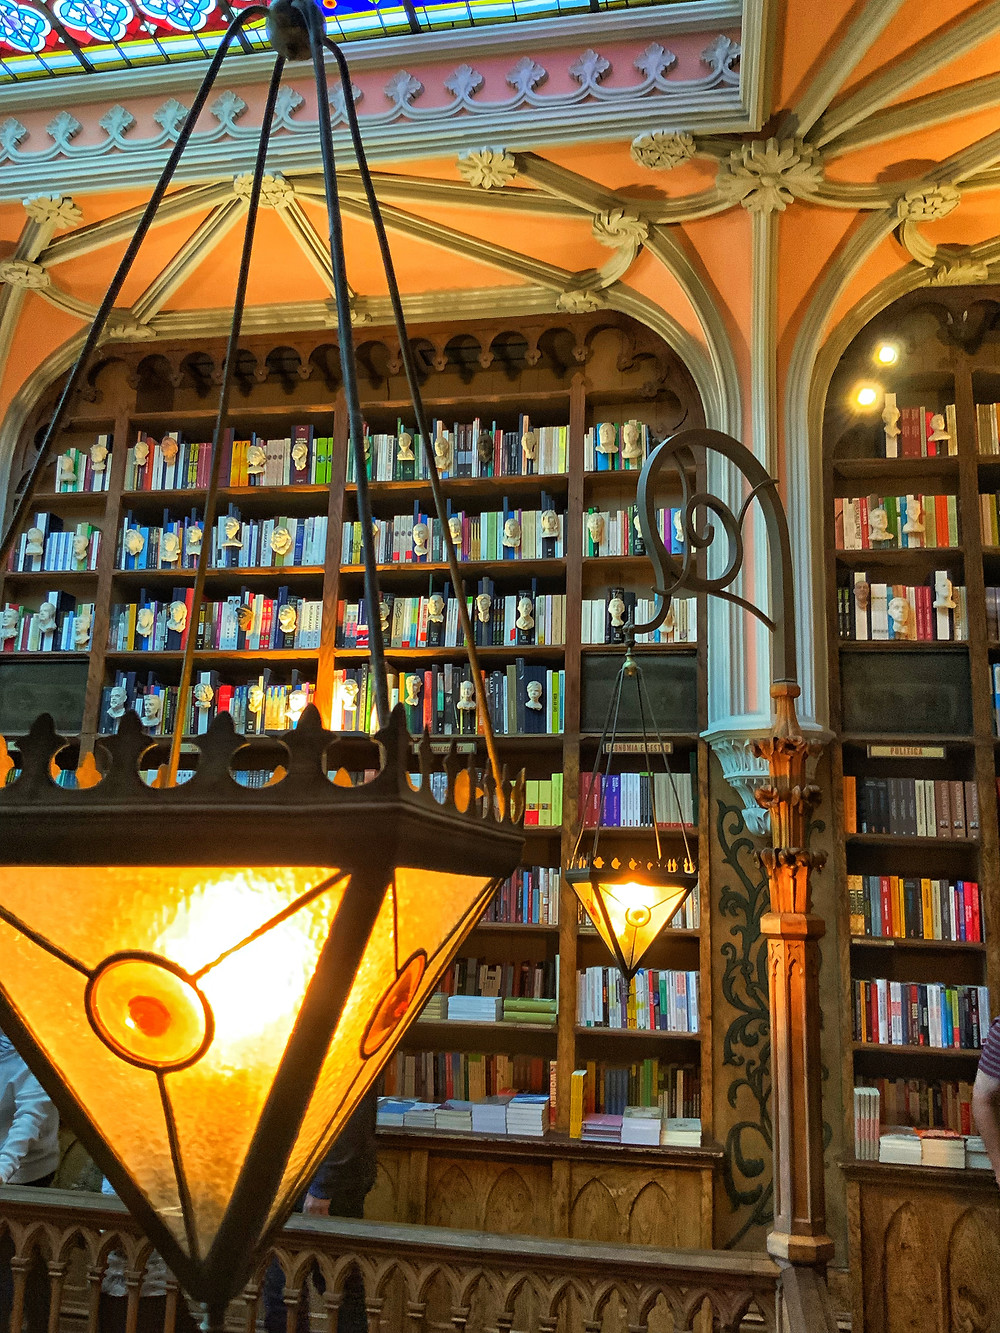 beautiful art nouveau features and lighting in Livraria Lello